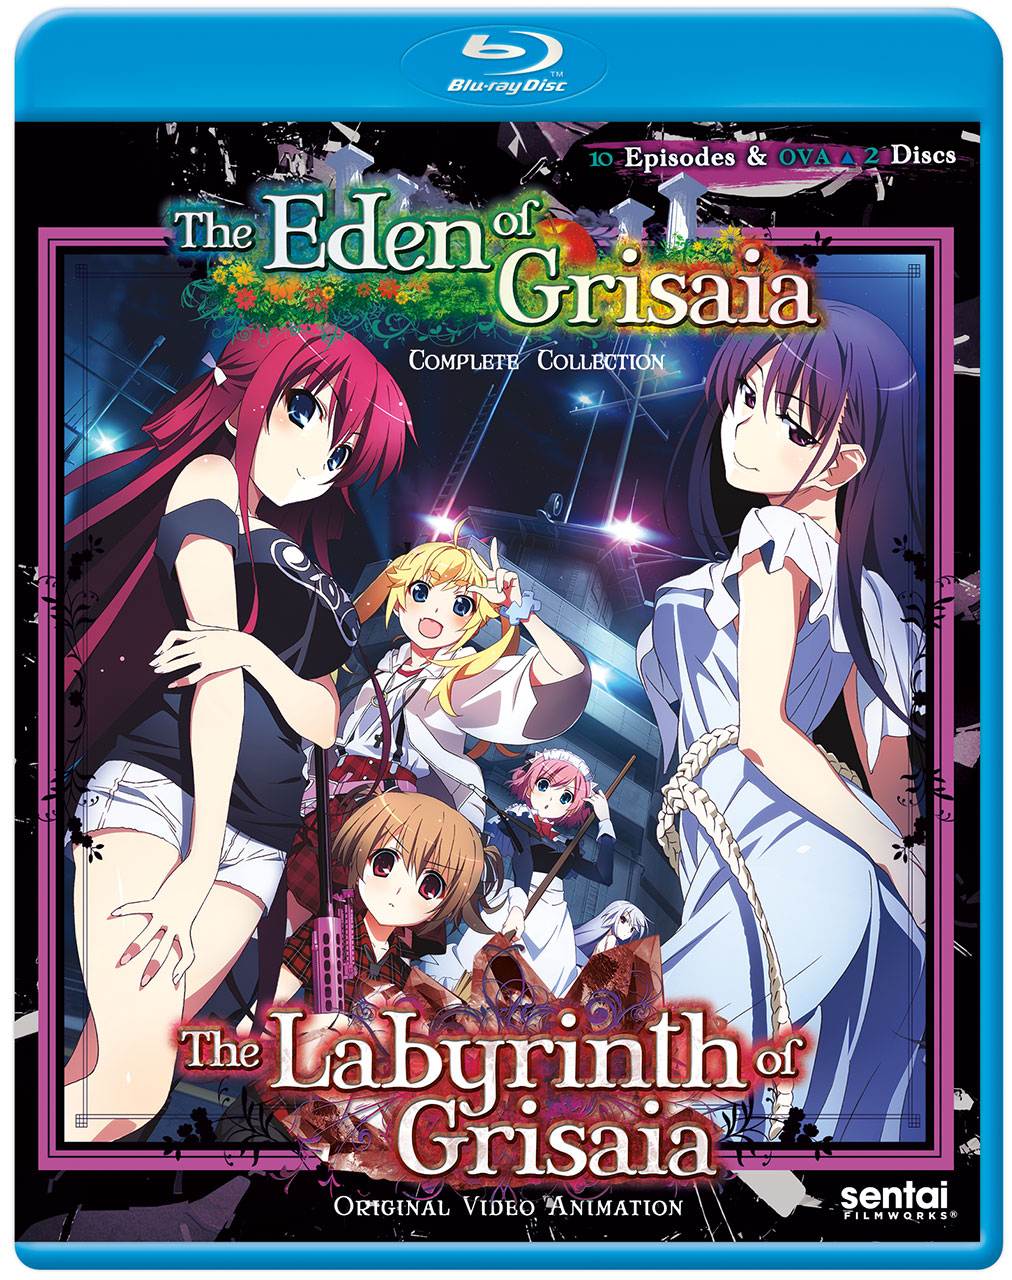 Labyrinth of Grisaia + Eden of Grisaia Blu-ray 814131016294